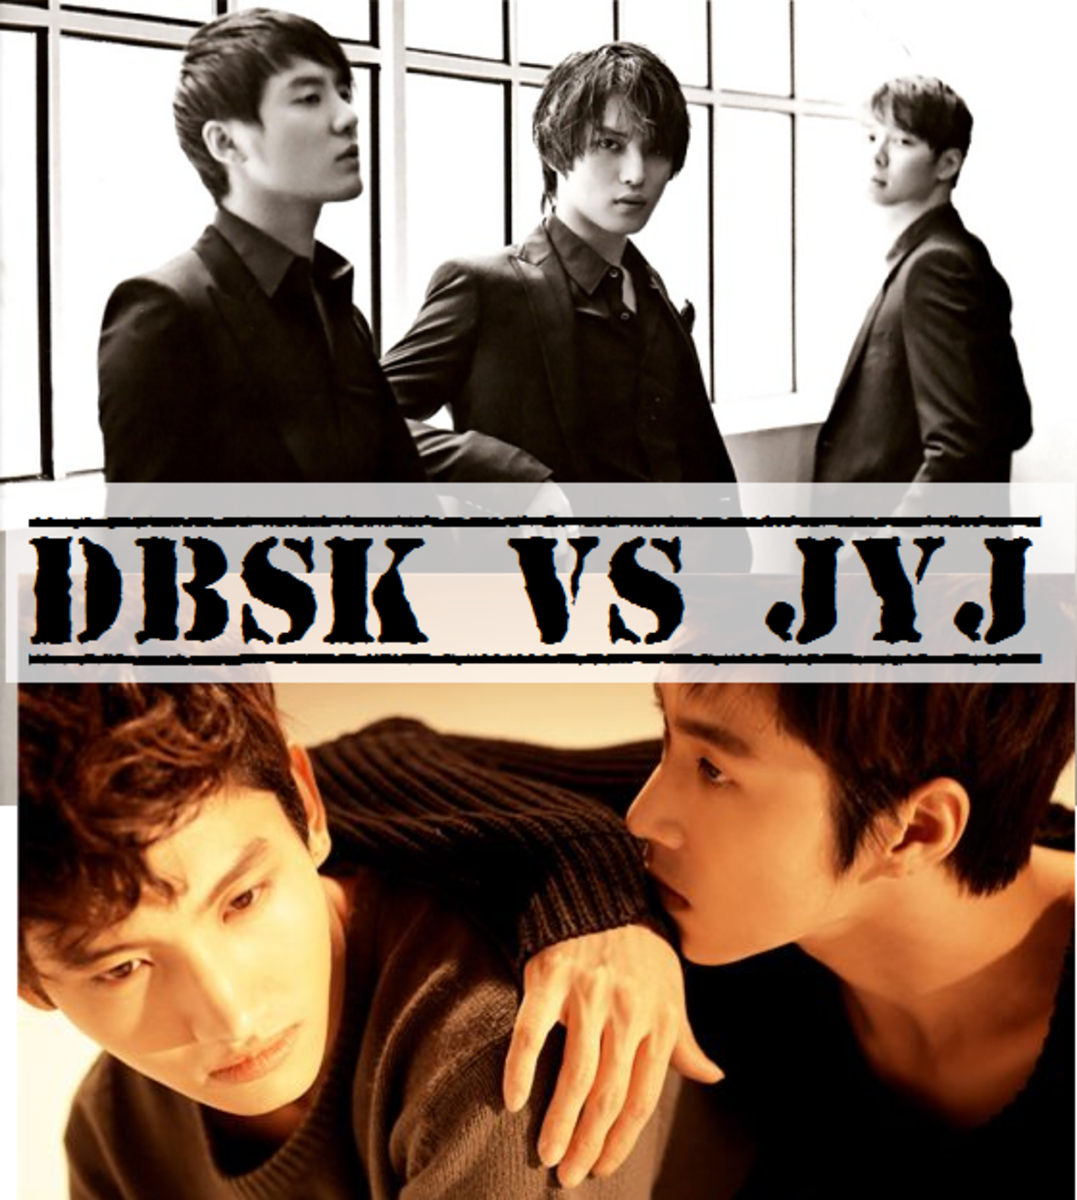 DBSK vs JYJ: Who is More Successful Now?